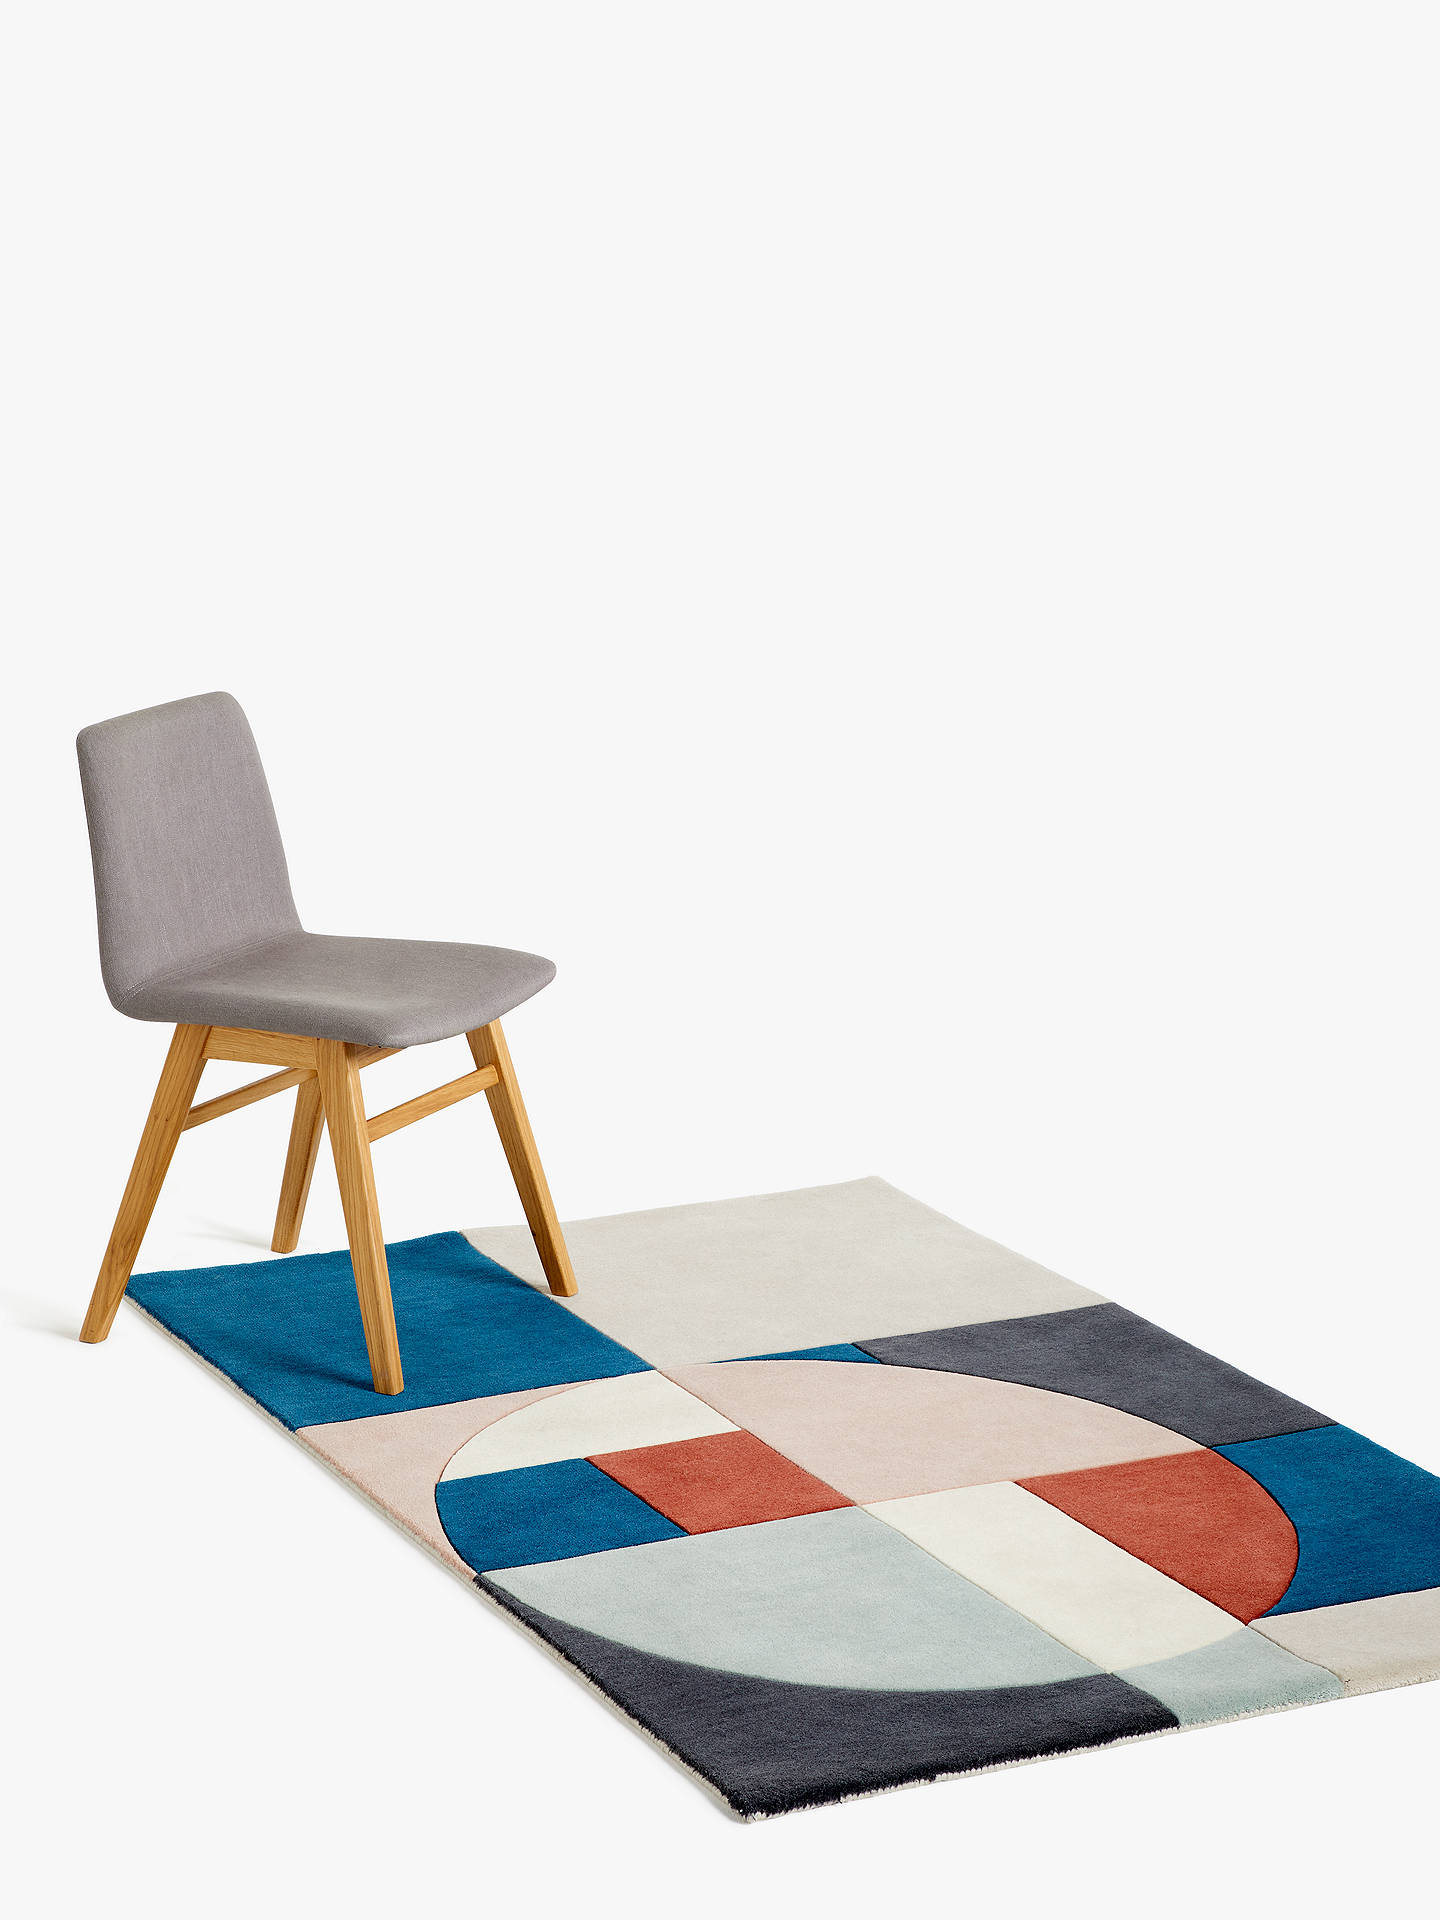 Buy John Lewis & Partners Tia Rug, Kingfisher, L120 x W180 cm Online at johnlewis.com